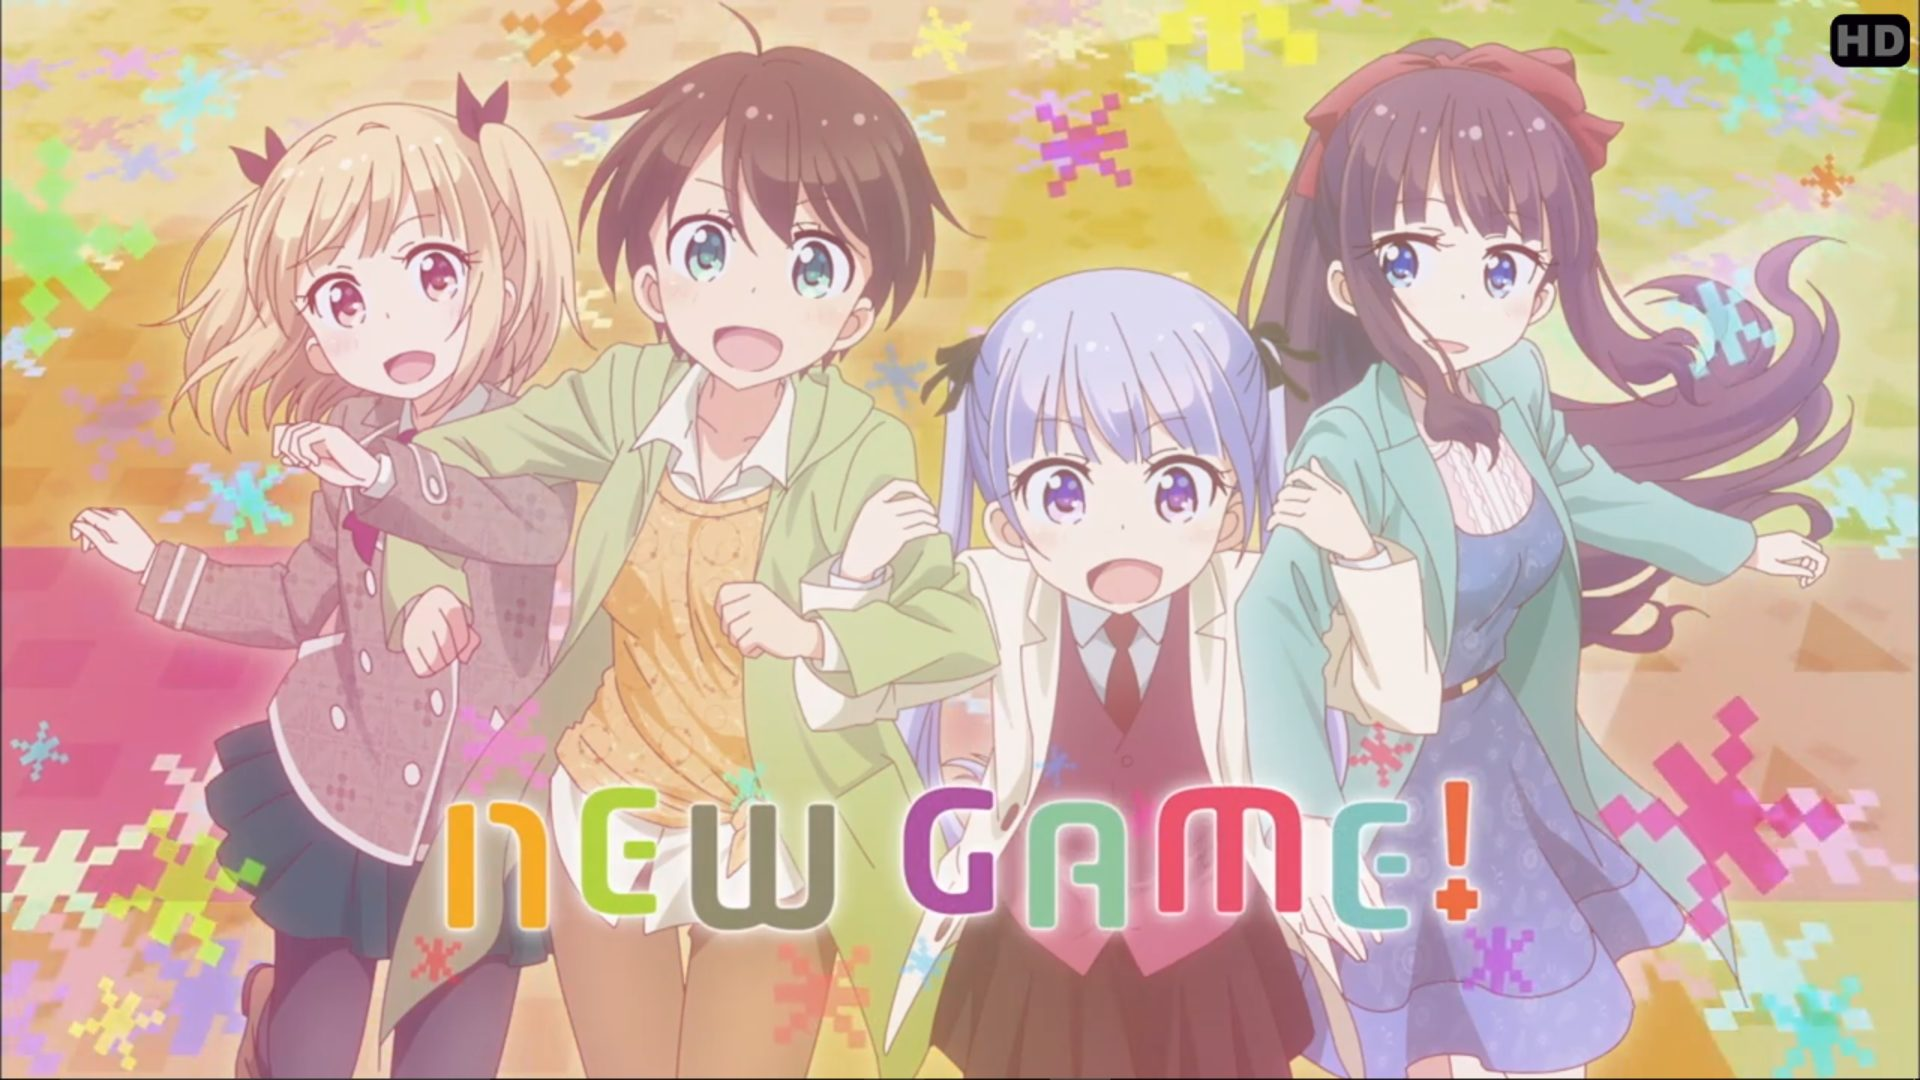 New Game Is A Slice Of Life Comedy Anime